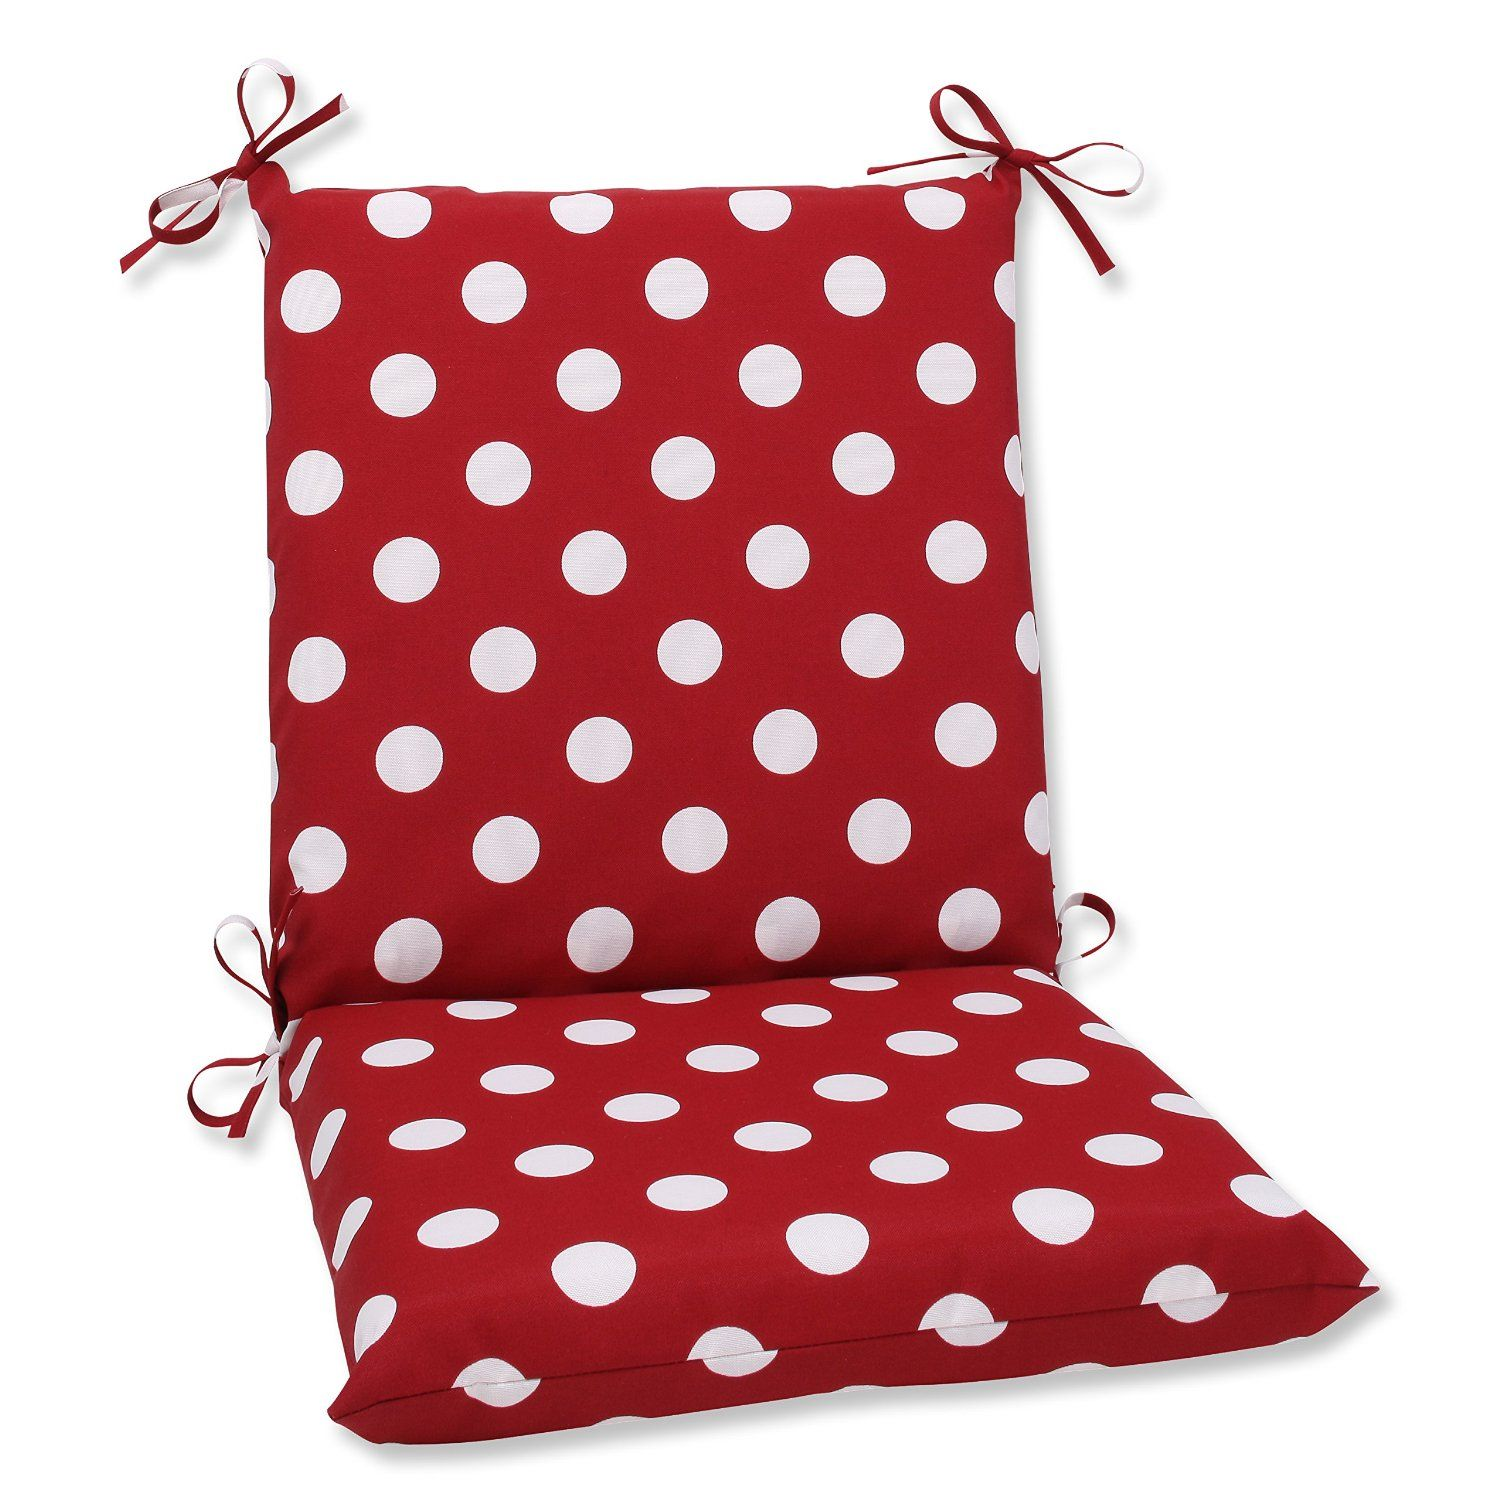 Robot Check Outdoor Chair Cushions Outdoor Dining Chair Cushions Perfect Pillow